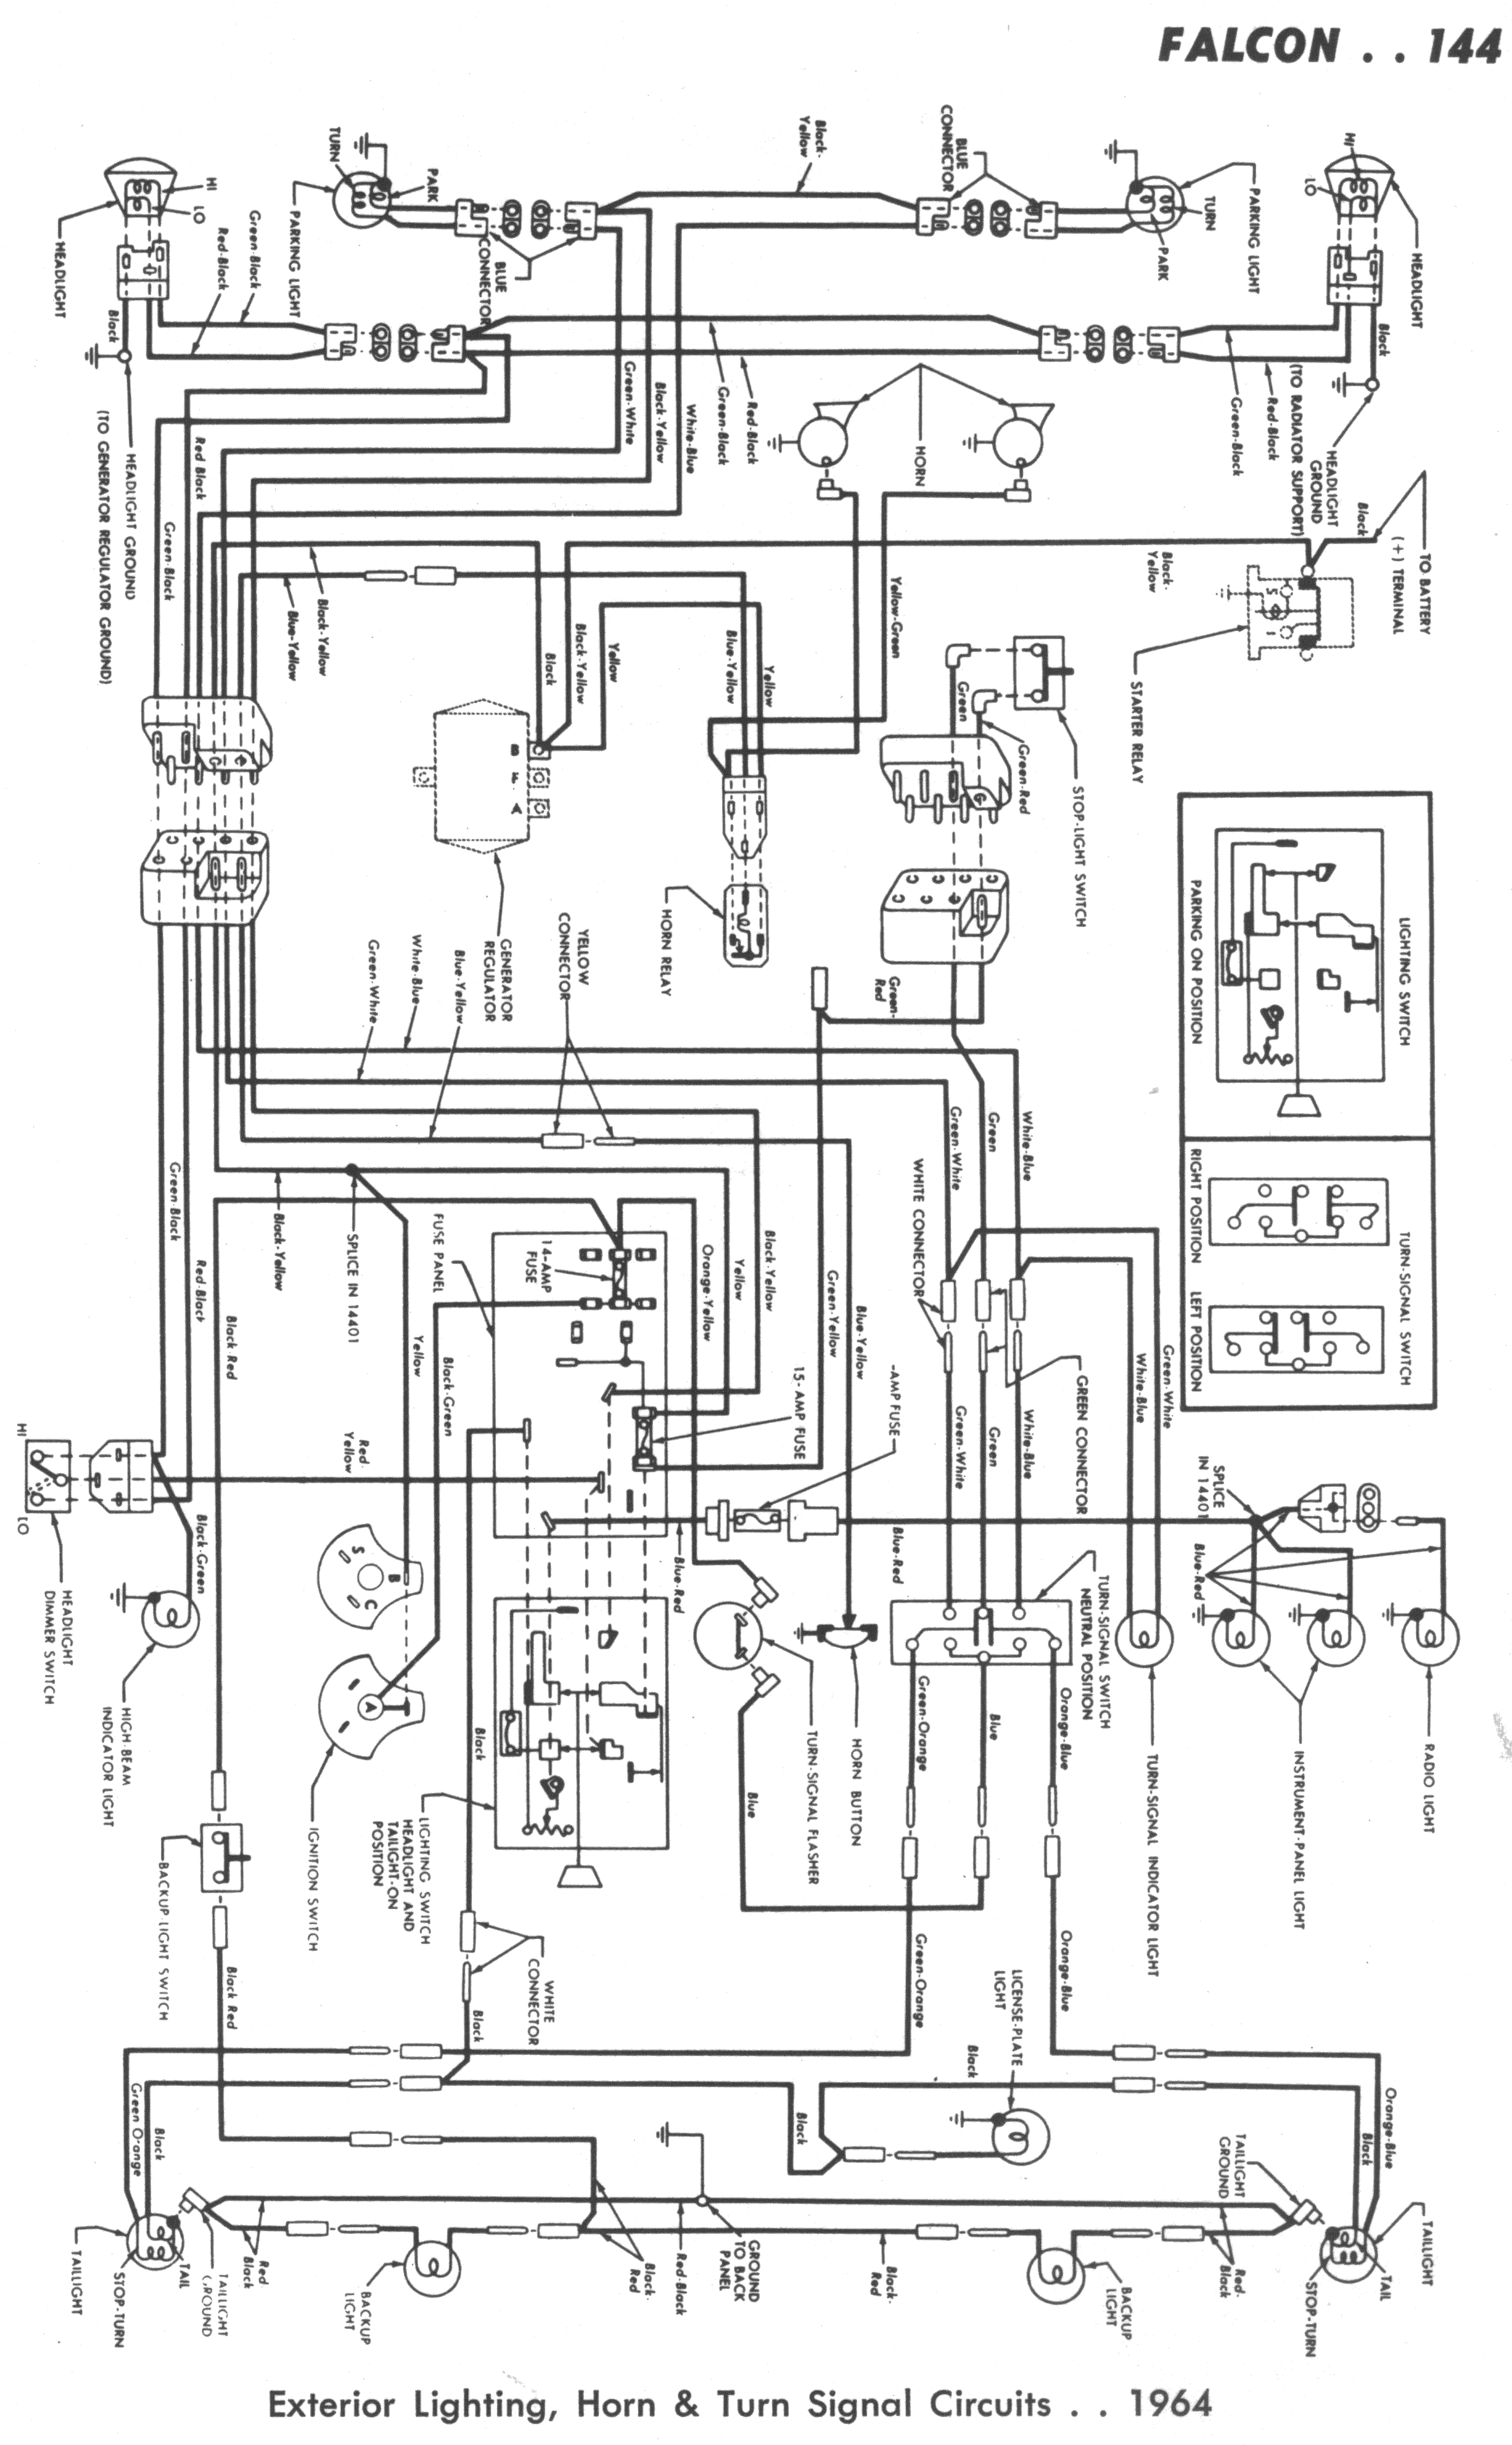 Wiring 61 62 144Ra falcon wiring diagrams 1964 ford falcon wiring diagram at suagrazia.org